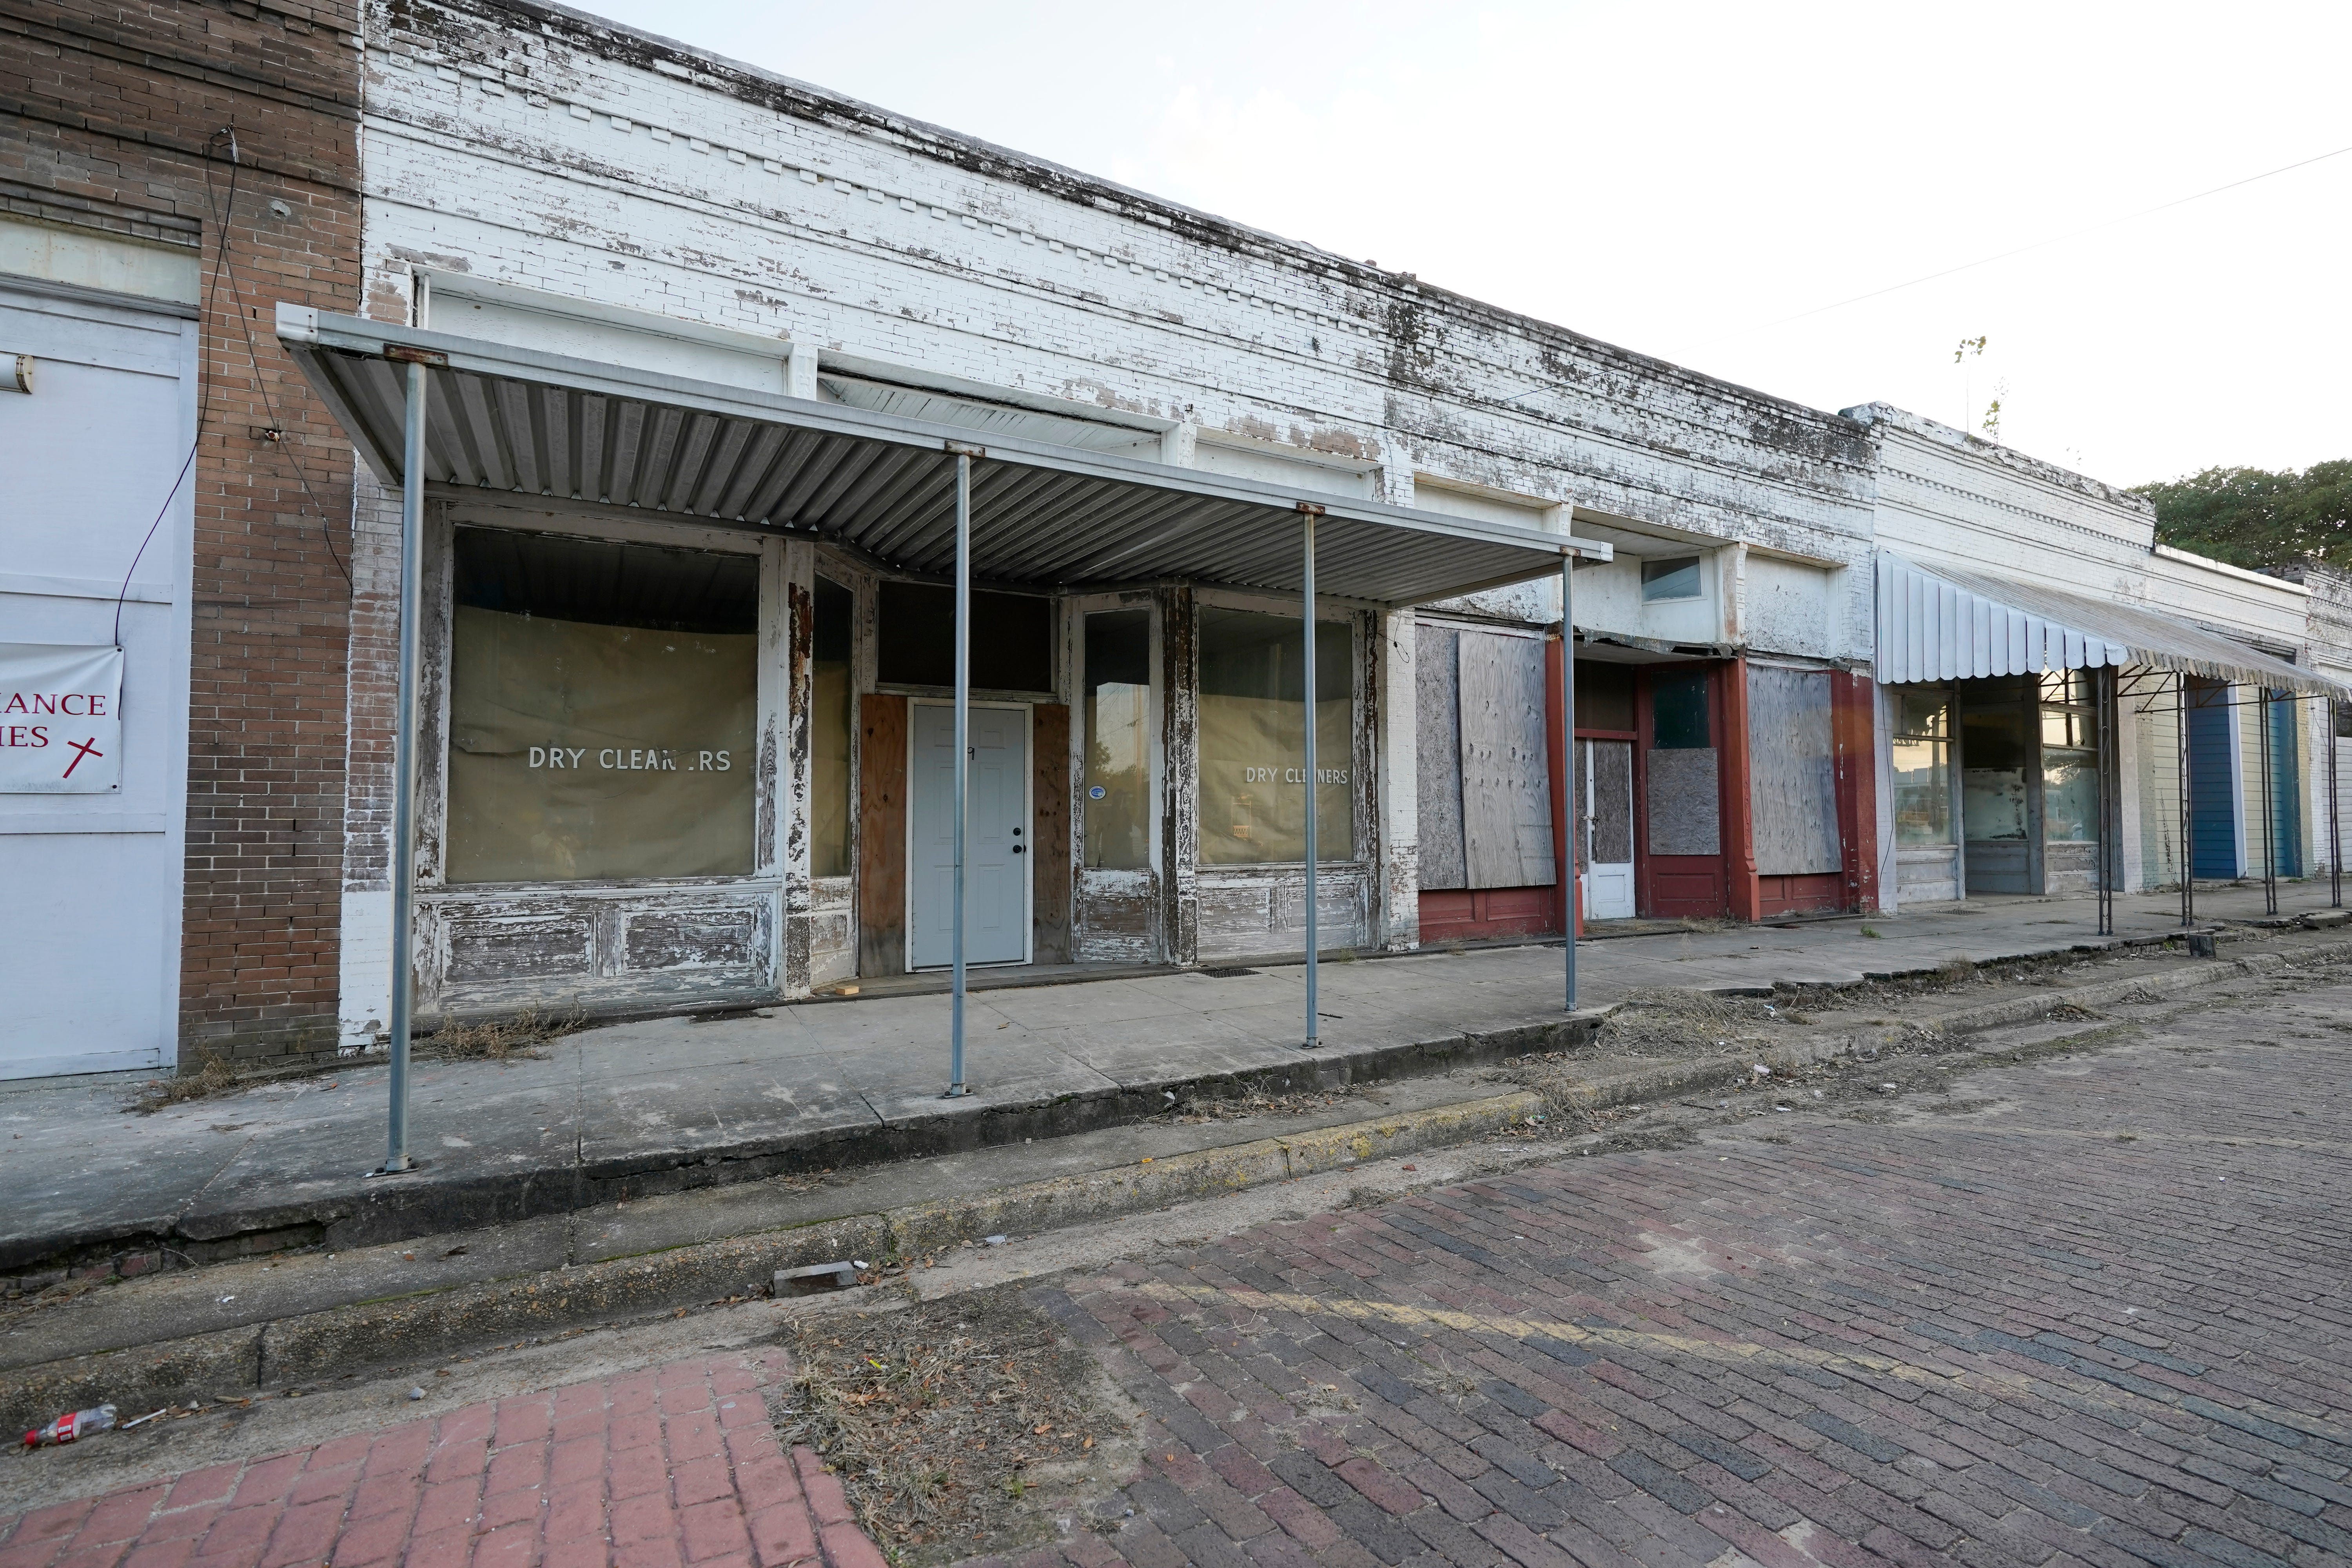 Vacant, unkept, boarded up and weather worn store fronts line a street in downtown Itta Bena, Miss., Thursday, Oct. 22, 2020. Area residents believe the high price of electricity provided by the city as one of the reasons for store closures. (AP Photo/Rogelio V. Solis)